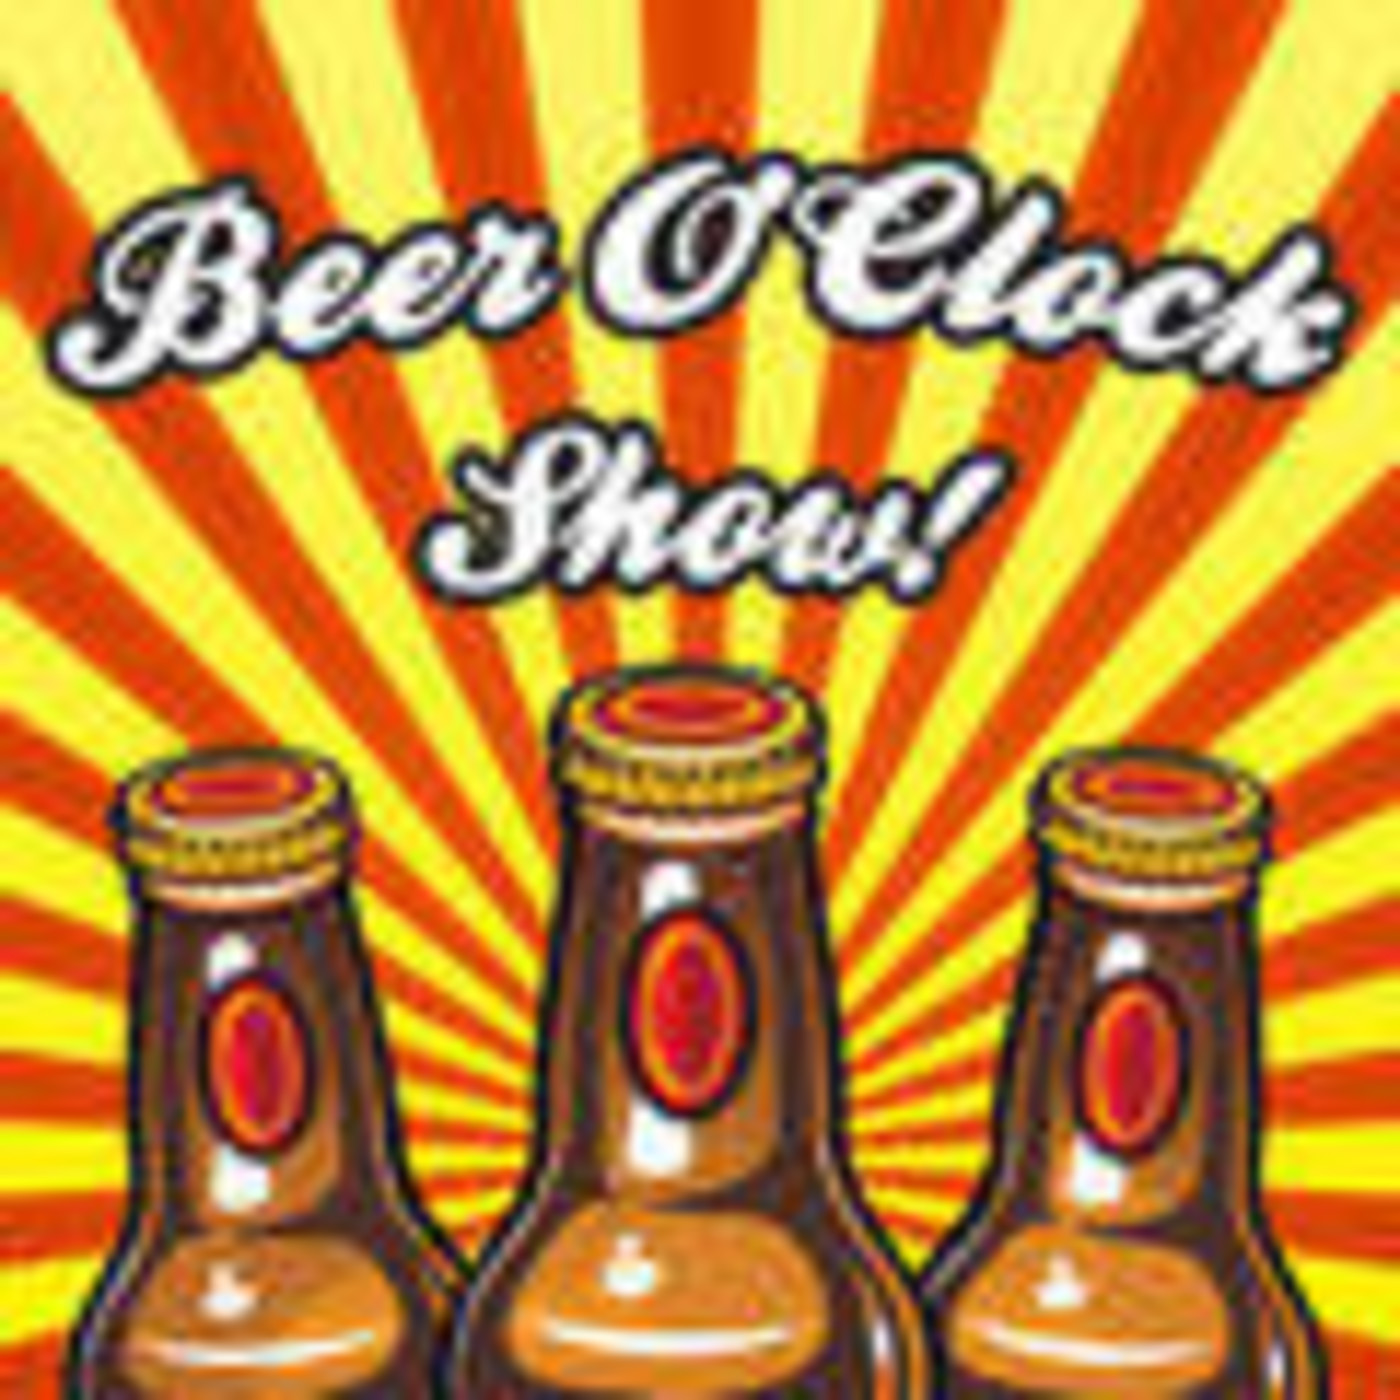 The Beer O'Clock Show